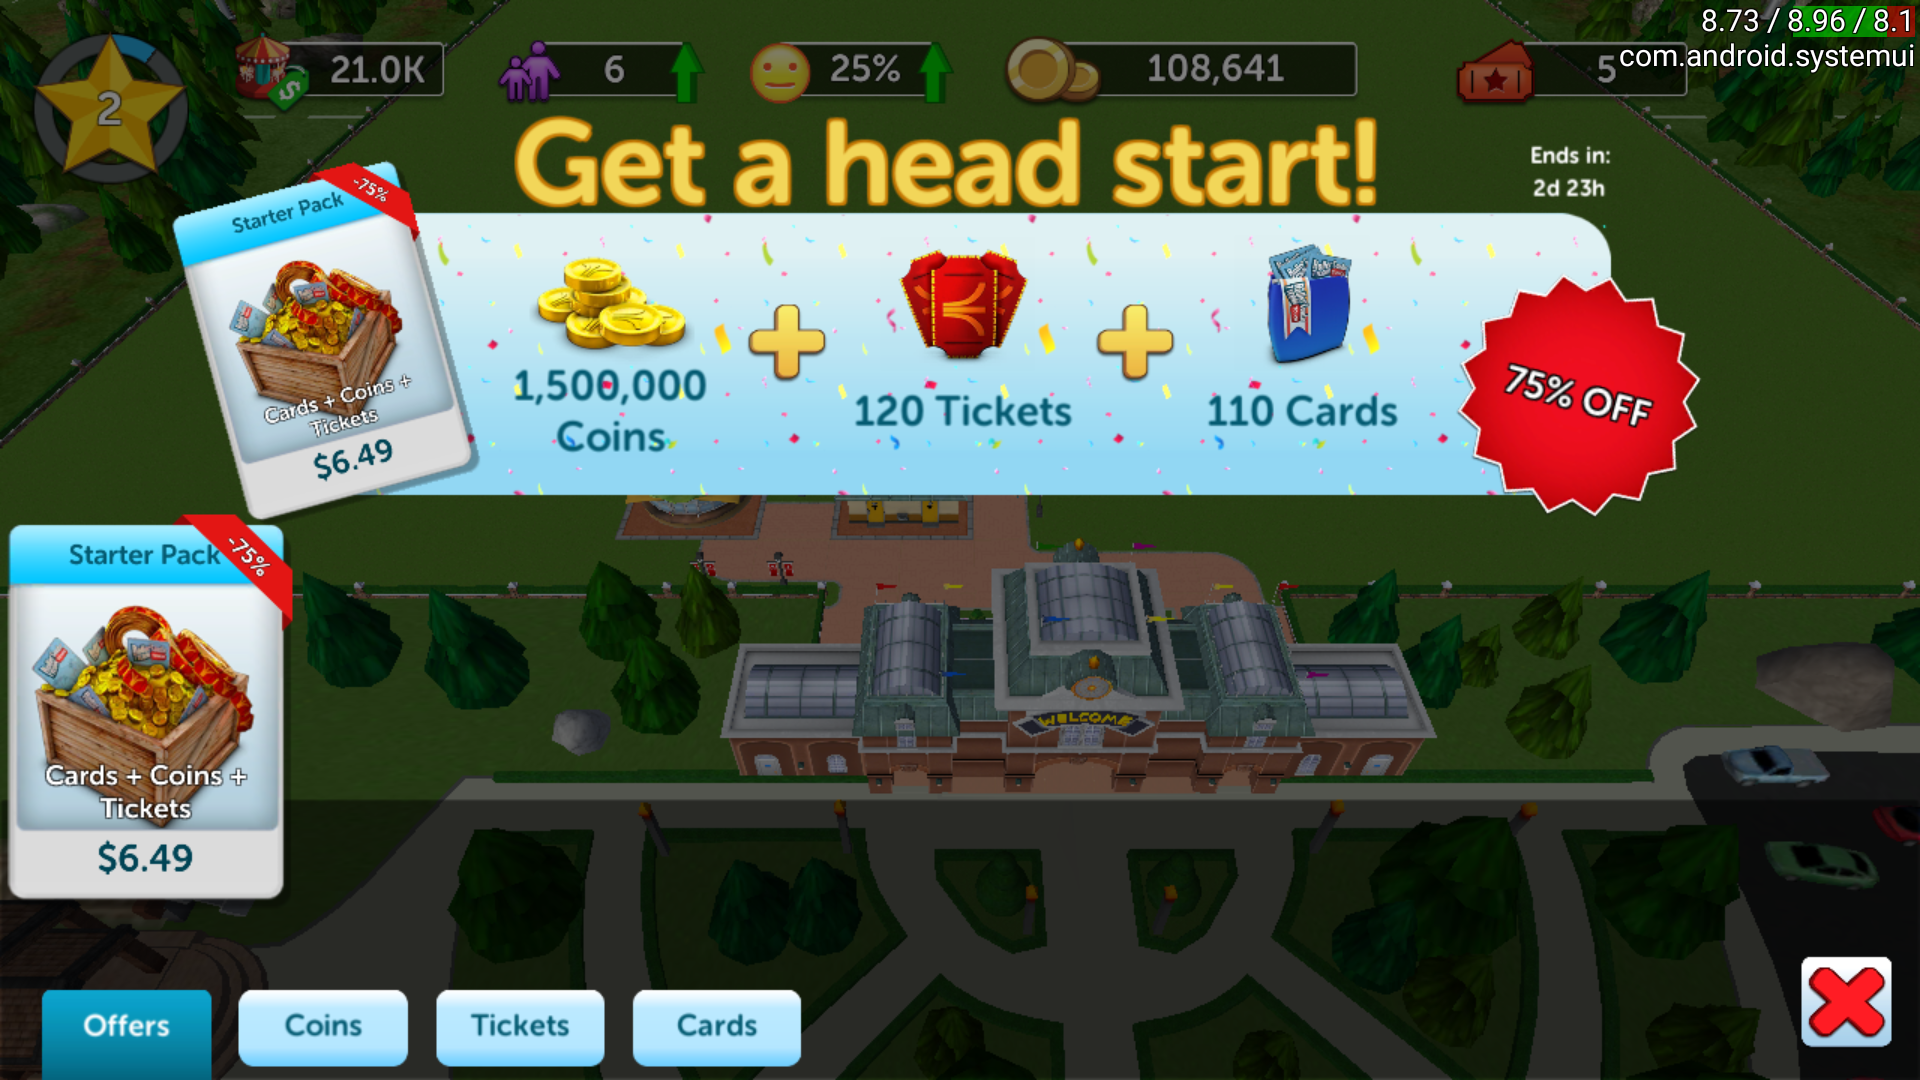 RollerCoaster Tycoon: Touch Screenshots for Android - MobyGames